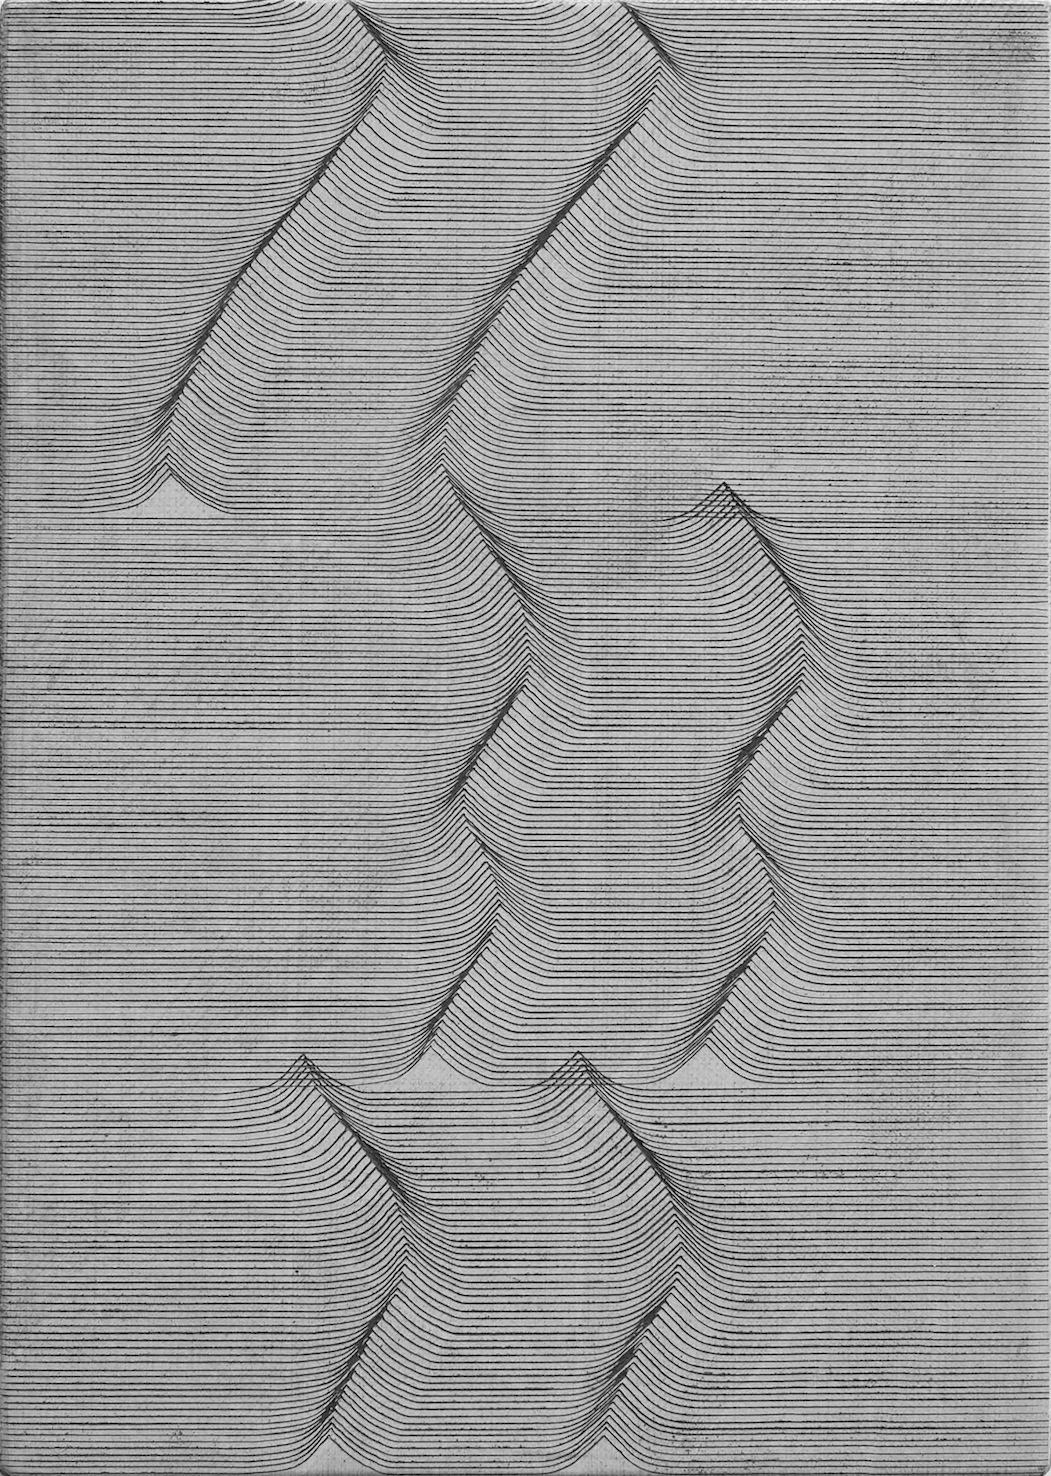 Long Ending (White)   Casein Paint and Scratches on Gesso Panel  30 x 21.5 x 2.5 cm